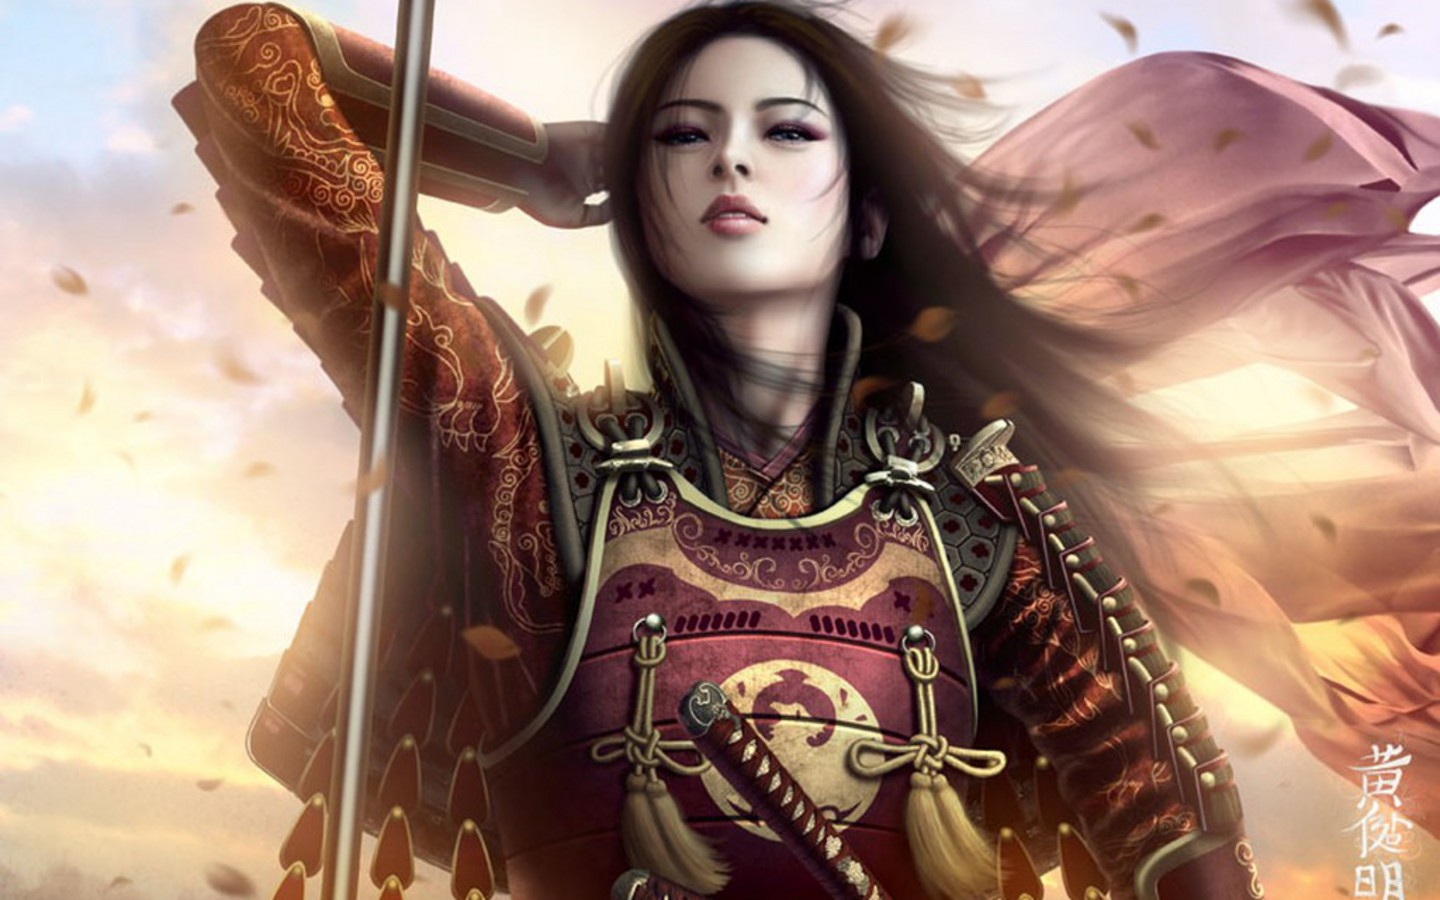 ... wallpapers fantasy asian women wallpapers fantasy angel hd wallpapers